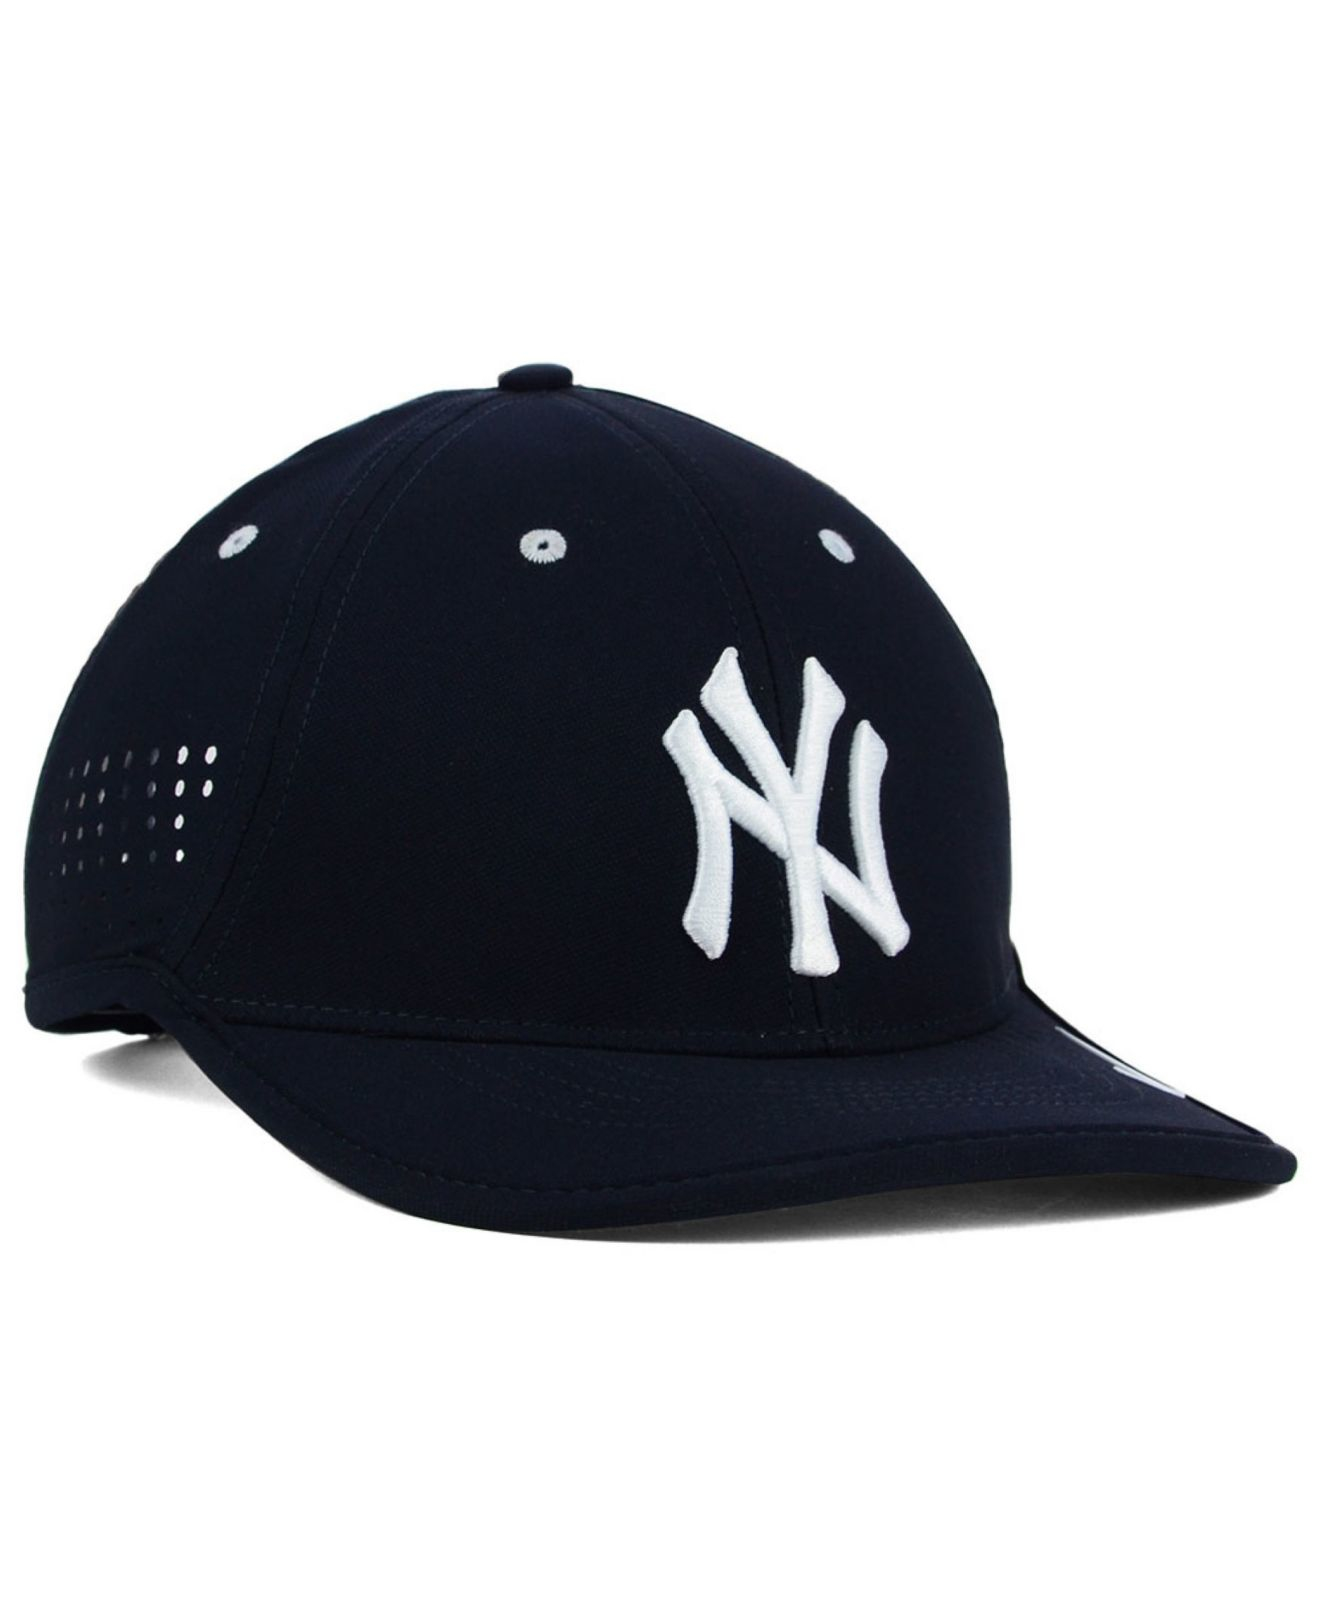 4abcde2cdb211 ... netherlands lyst nike new york yankees vapor swoosh adjustable cap in  blue for men 8709a 18dd7